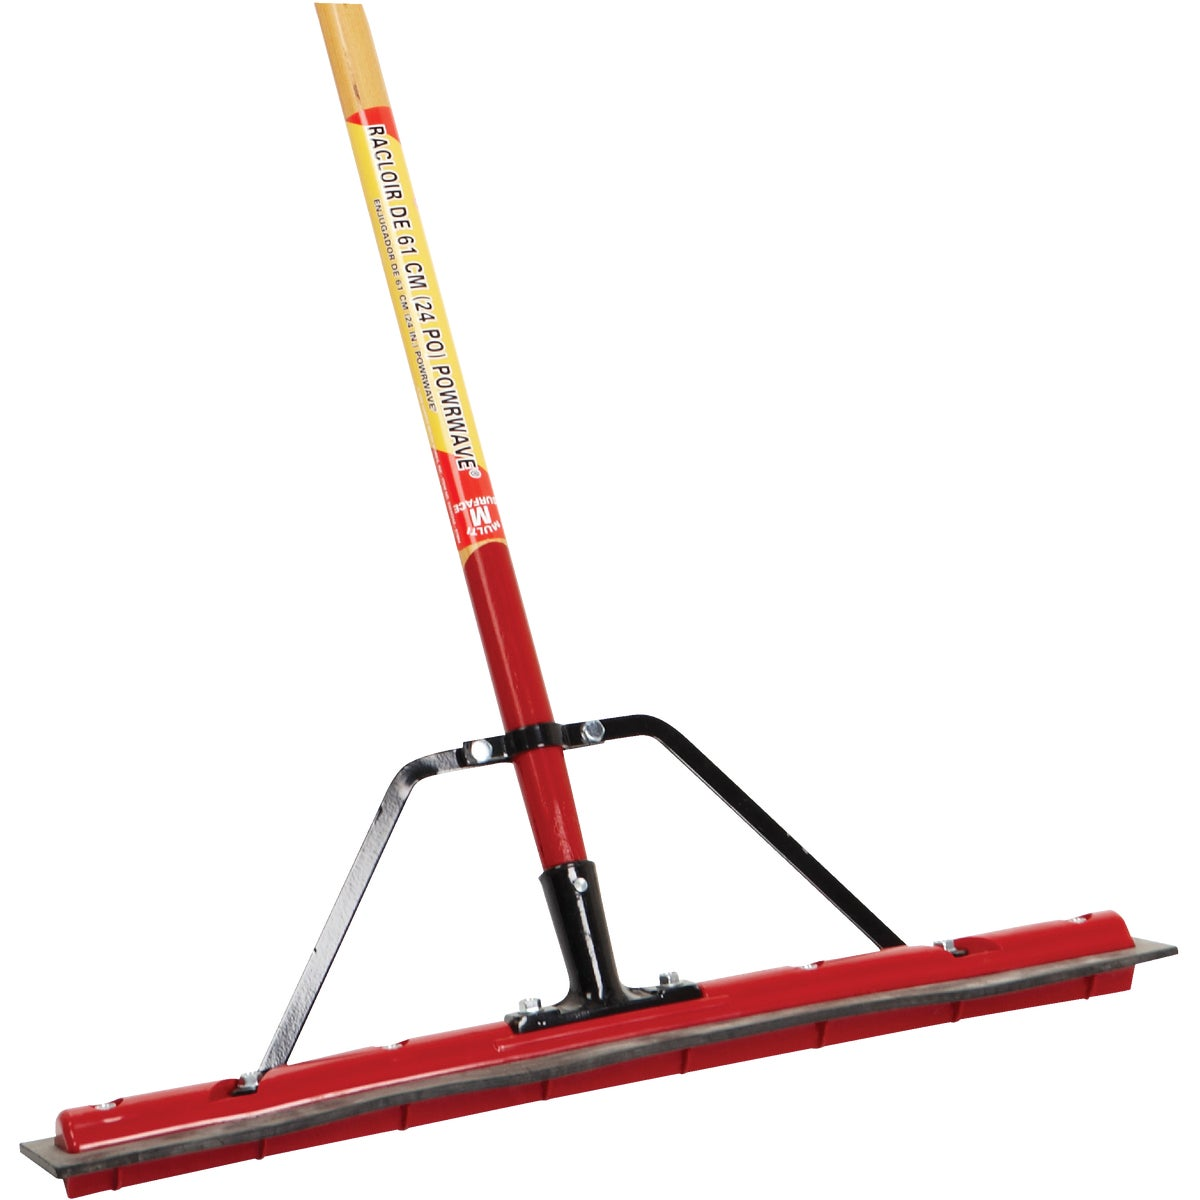 "24"" PRO FLOOR SQUEEGEE - 5324224A by Harper Brush Incom"